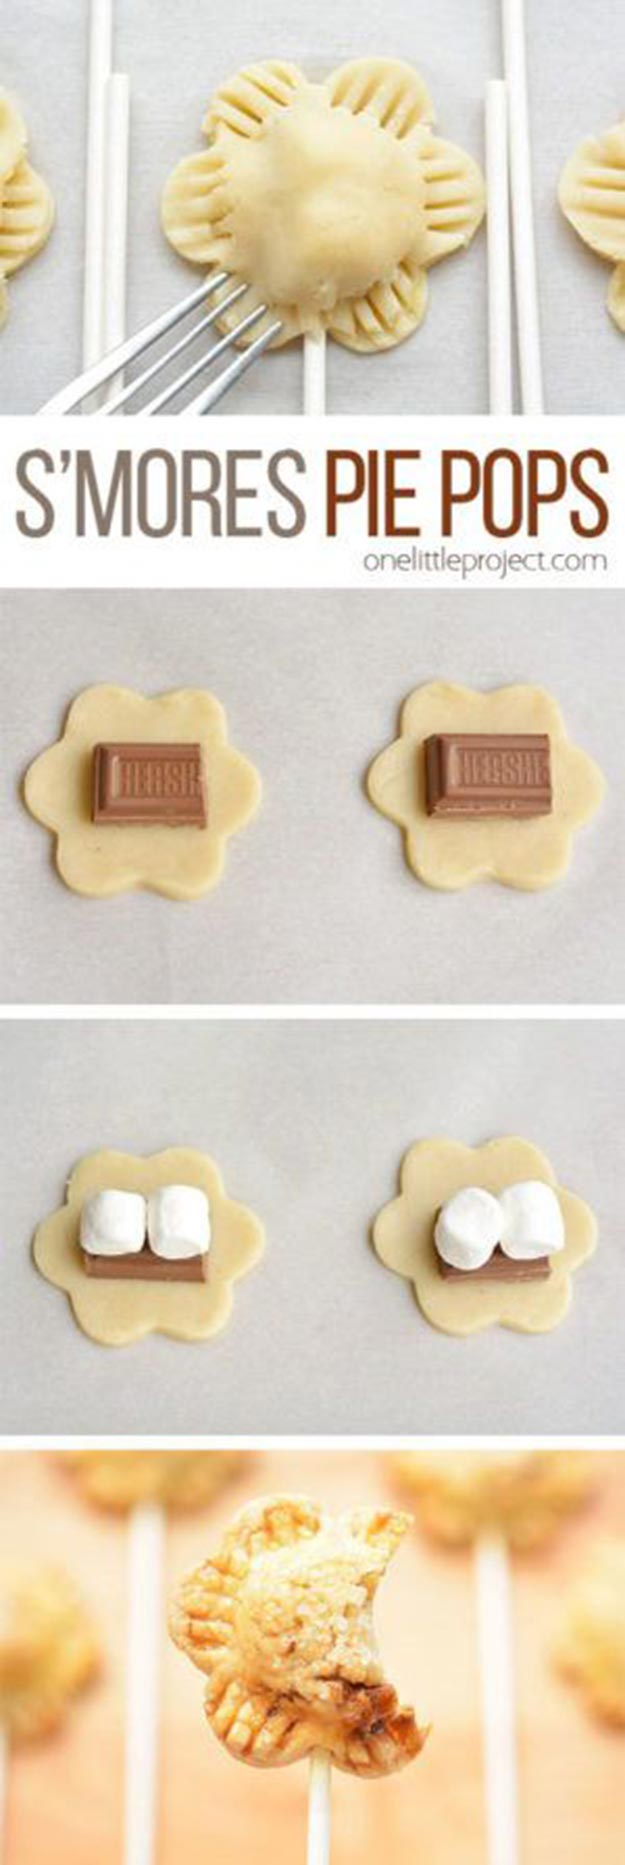 Cool and Easy Dessert Recipes For Teens to Make at Home - Flower Shaped S'more Pie Pops Recipe - Fun Desserts to Make With Chocolate, Fruit, Whipped Cream, Low Sugar, and Banana - Cake, Cookiess, Pie, Ice Cream Shakes and Pops Made With Healthy Ingredients and Food You Love - Quick Recipe Ideas for No Bake and 5 Minute Dessert At Home http://teencrafts.com/fun-dessert-ideas-recipes